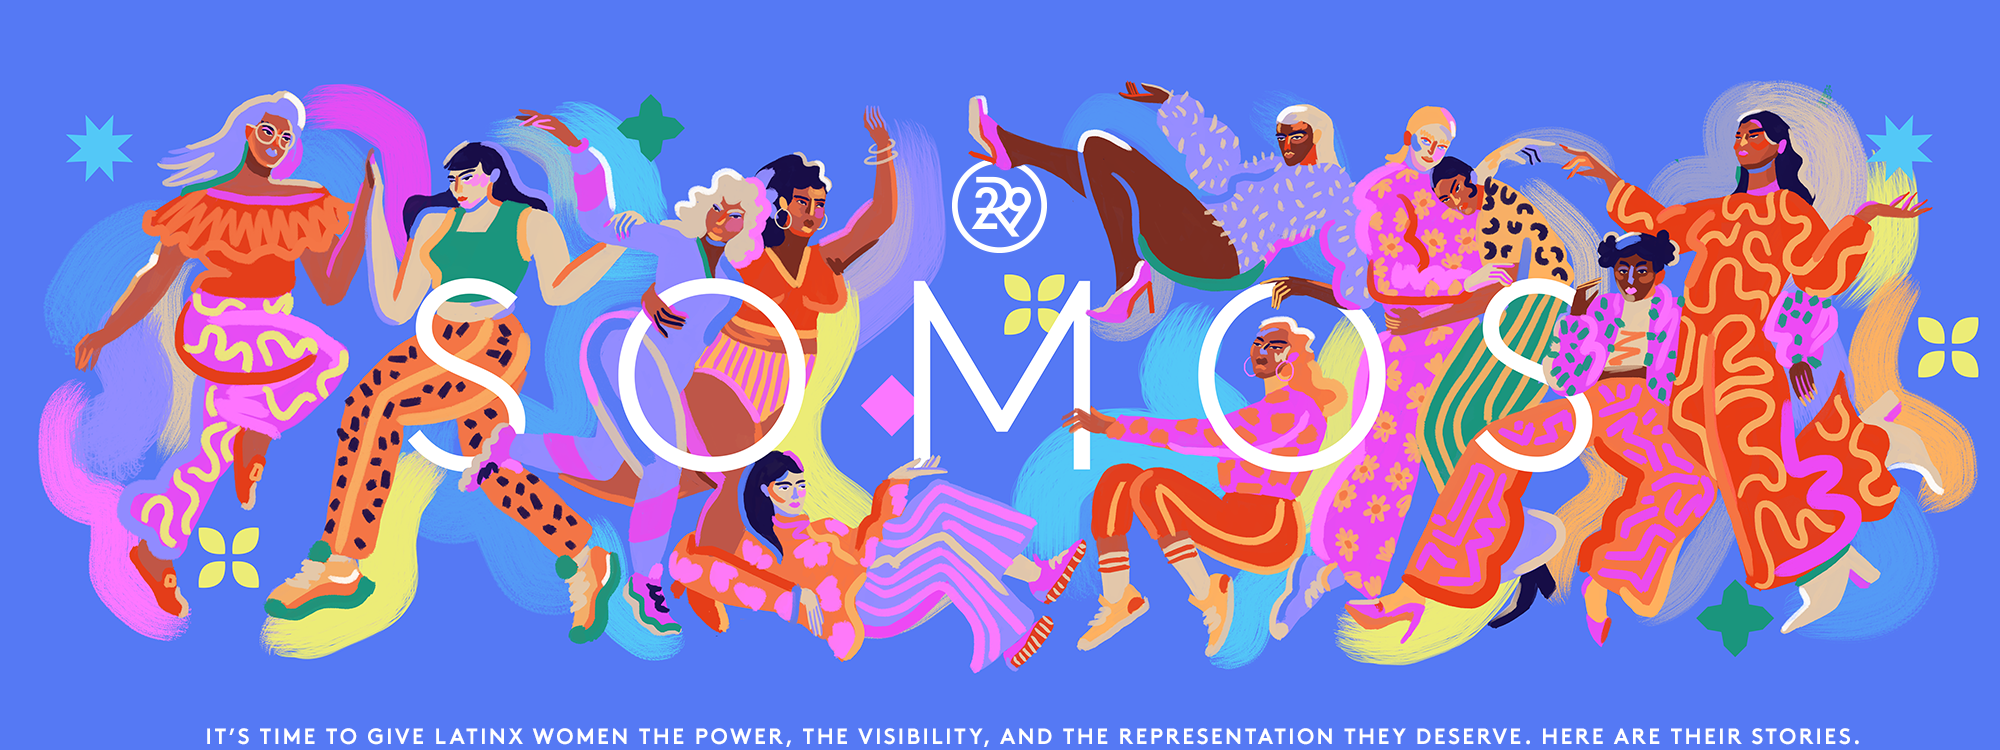 Somos: Telling Latinx stories and shifting the narrative, para nosotros - cover